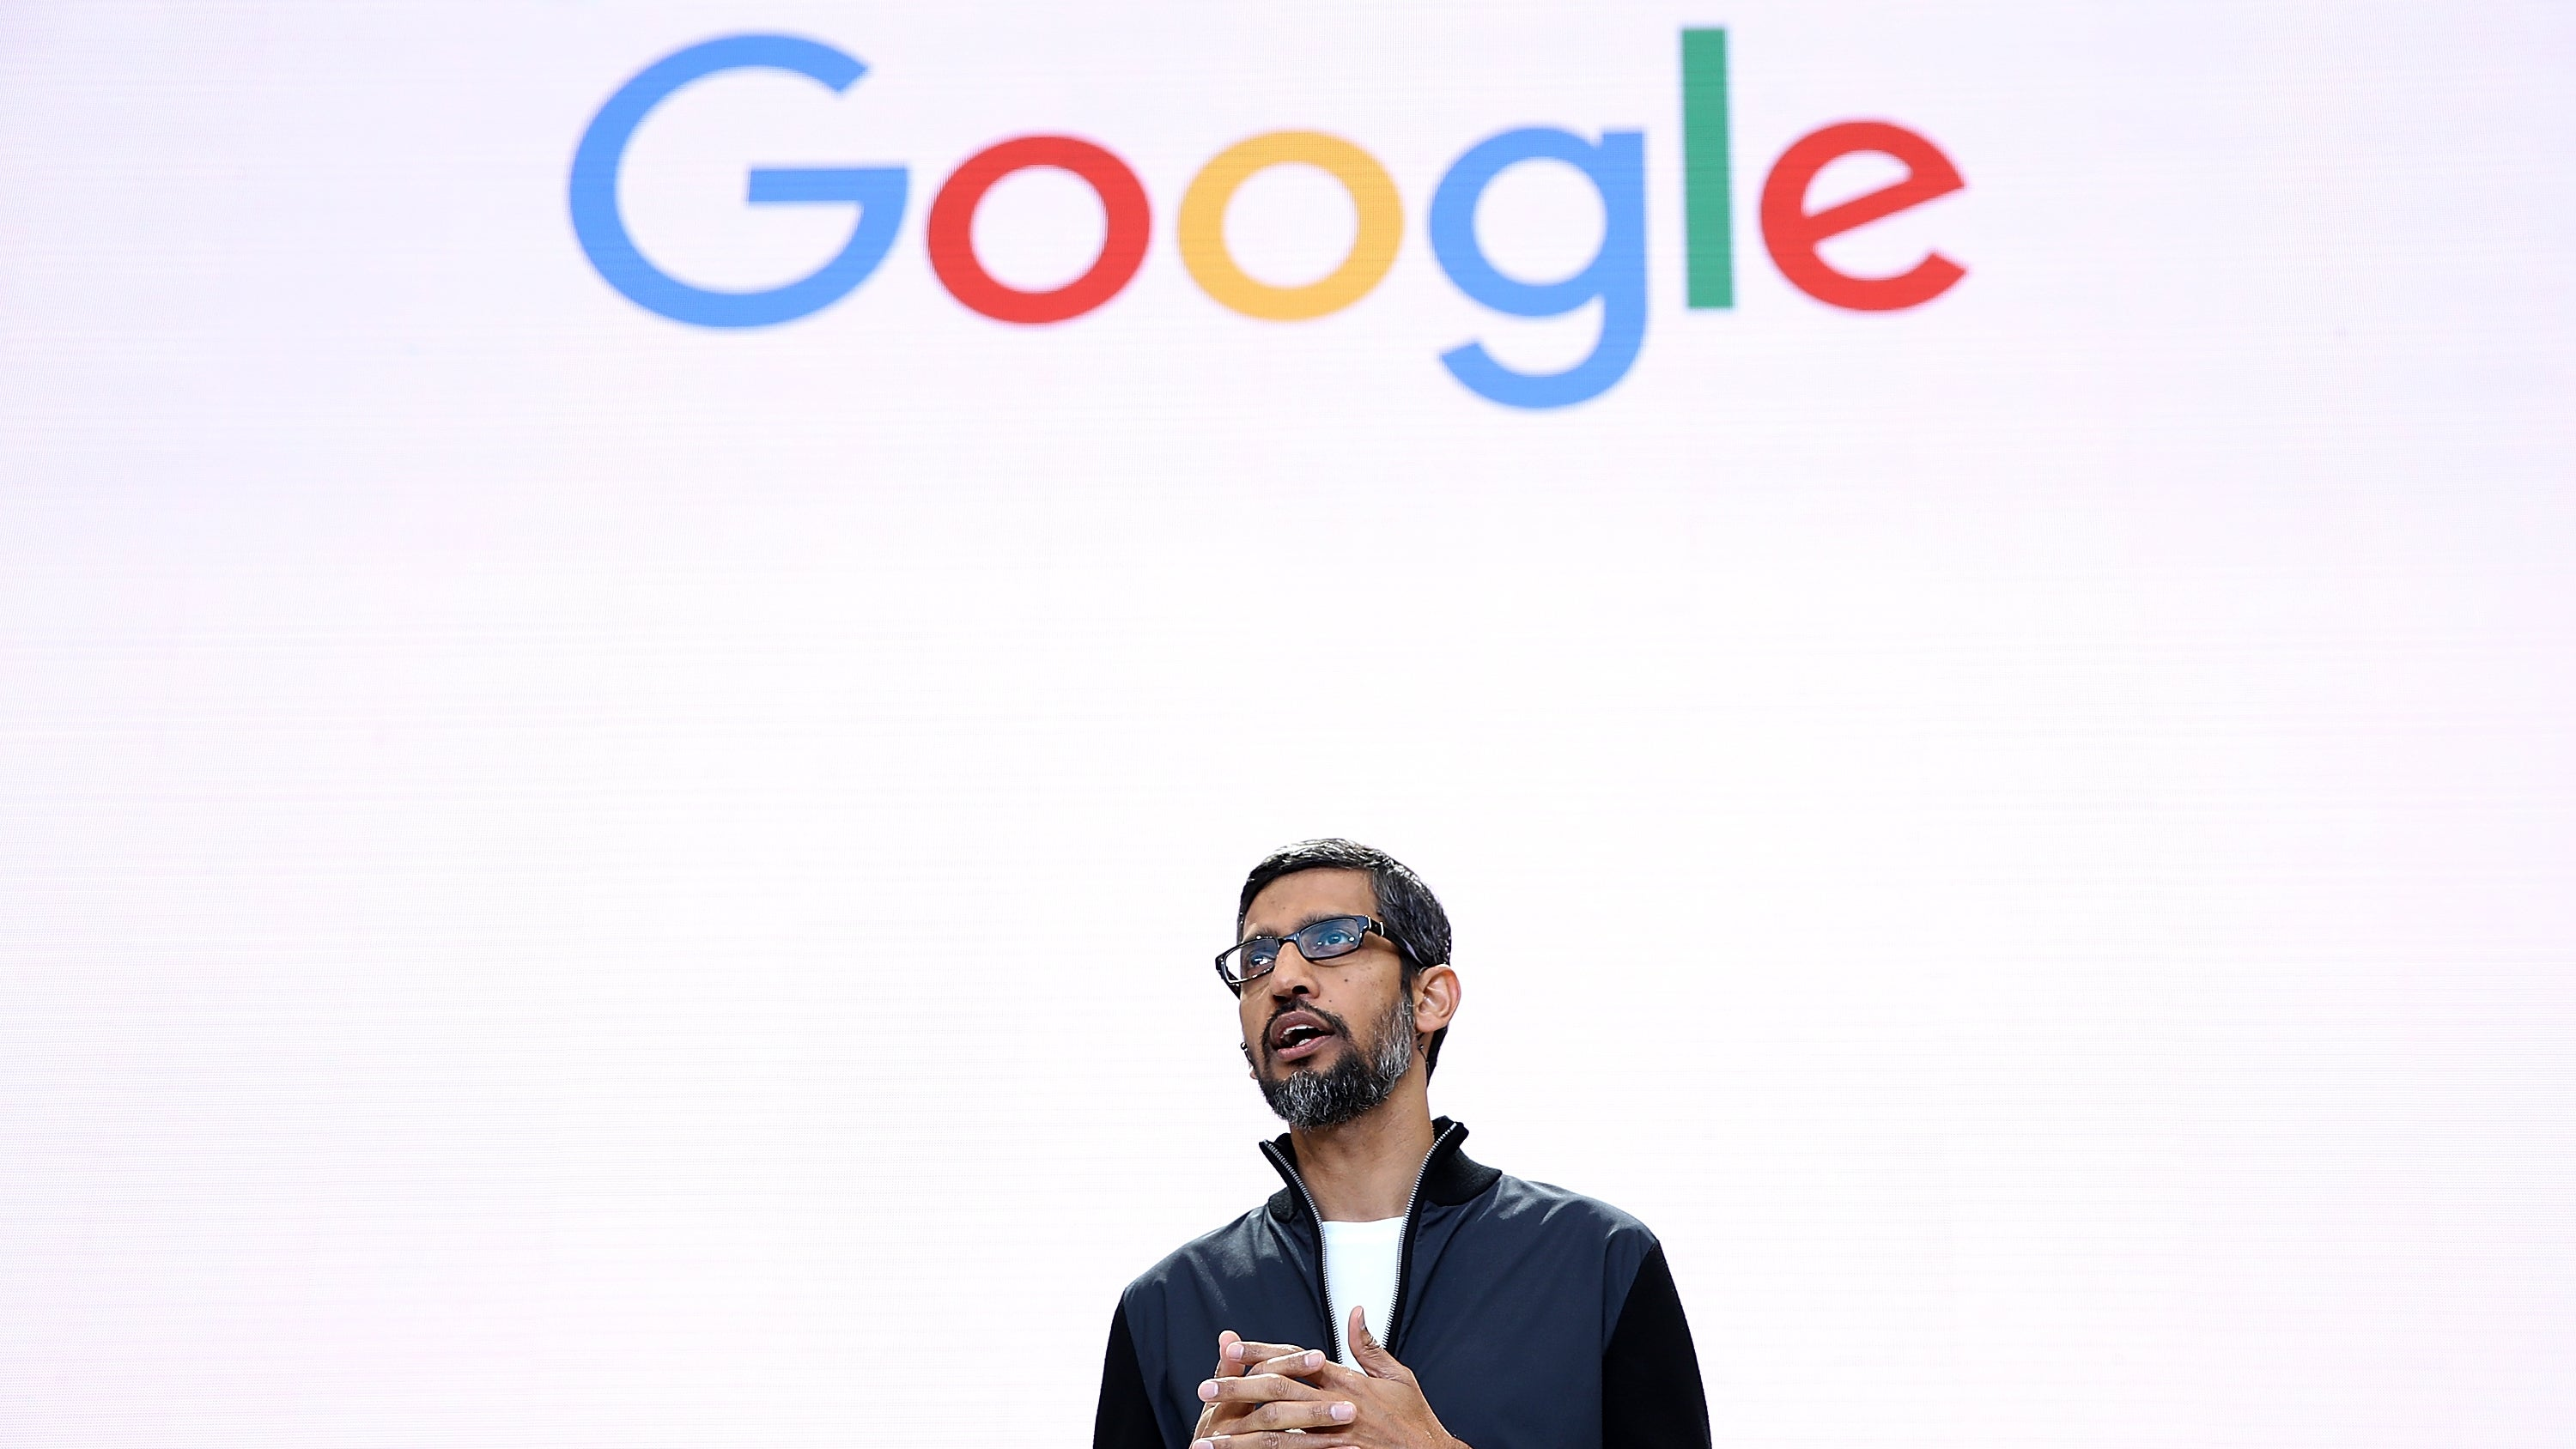 Google Reportedly Fires Author Of Anti-Diversity Manifesto